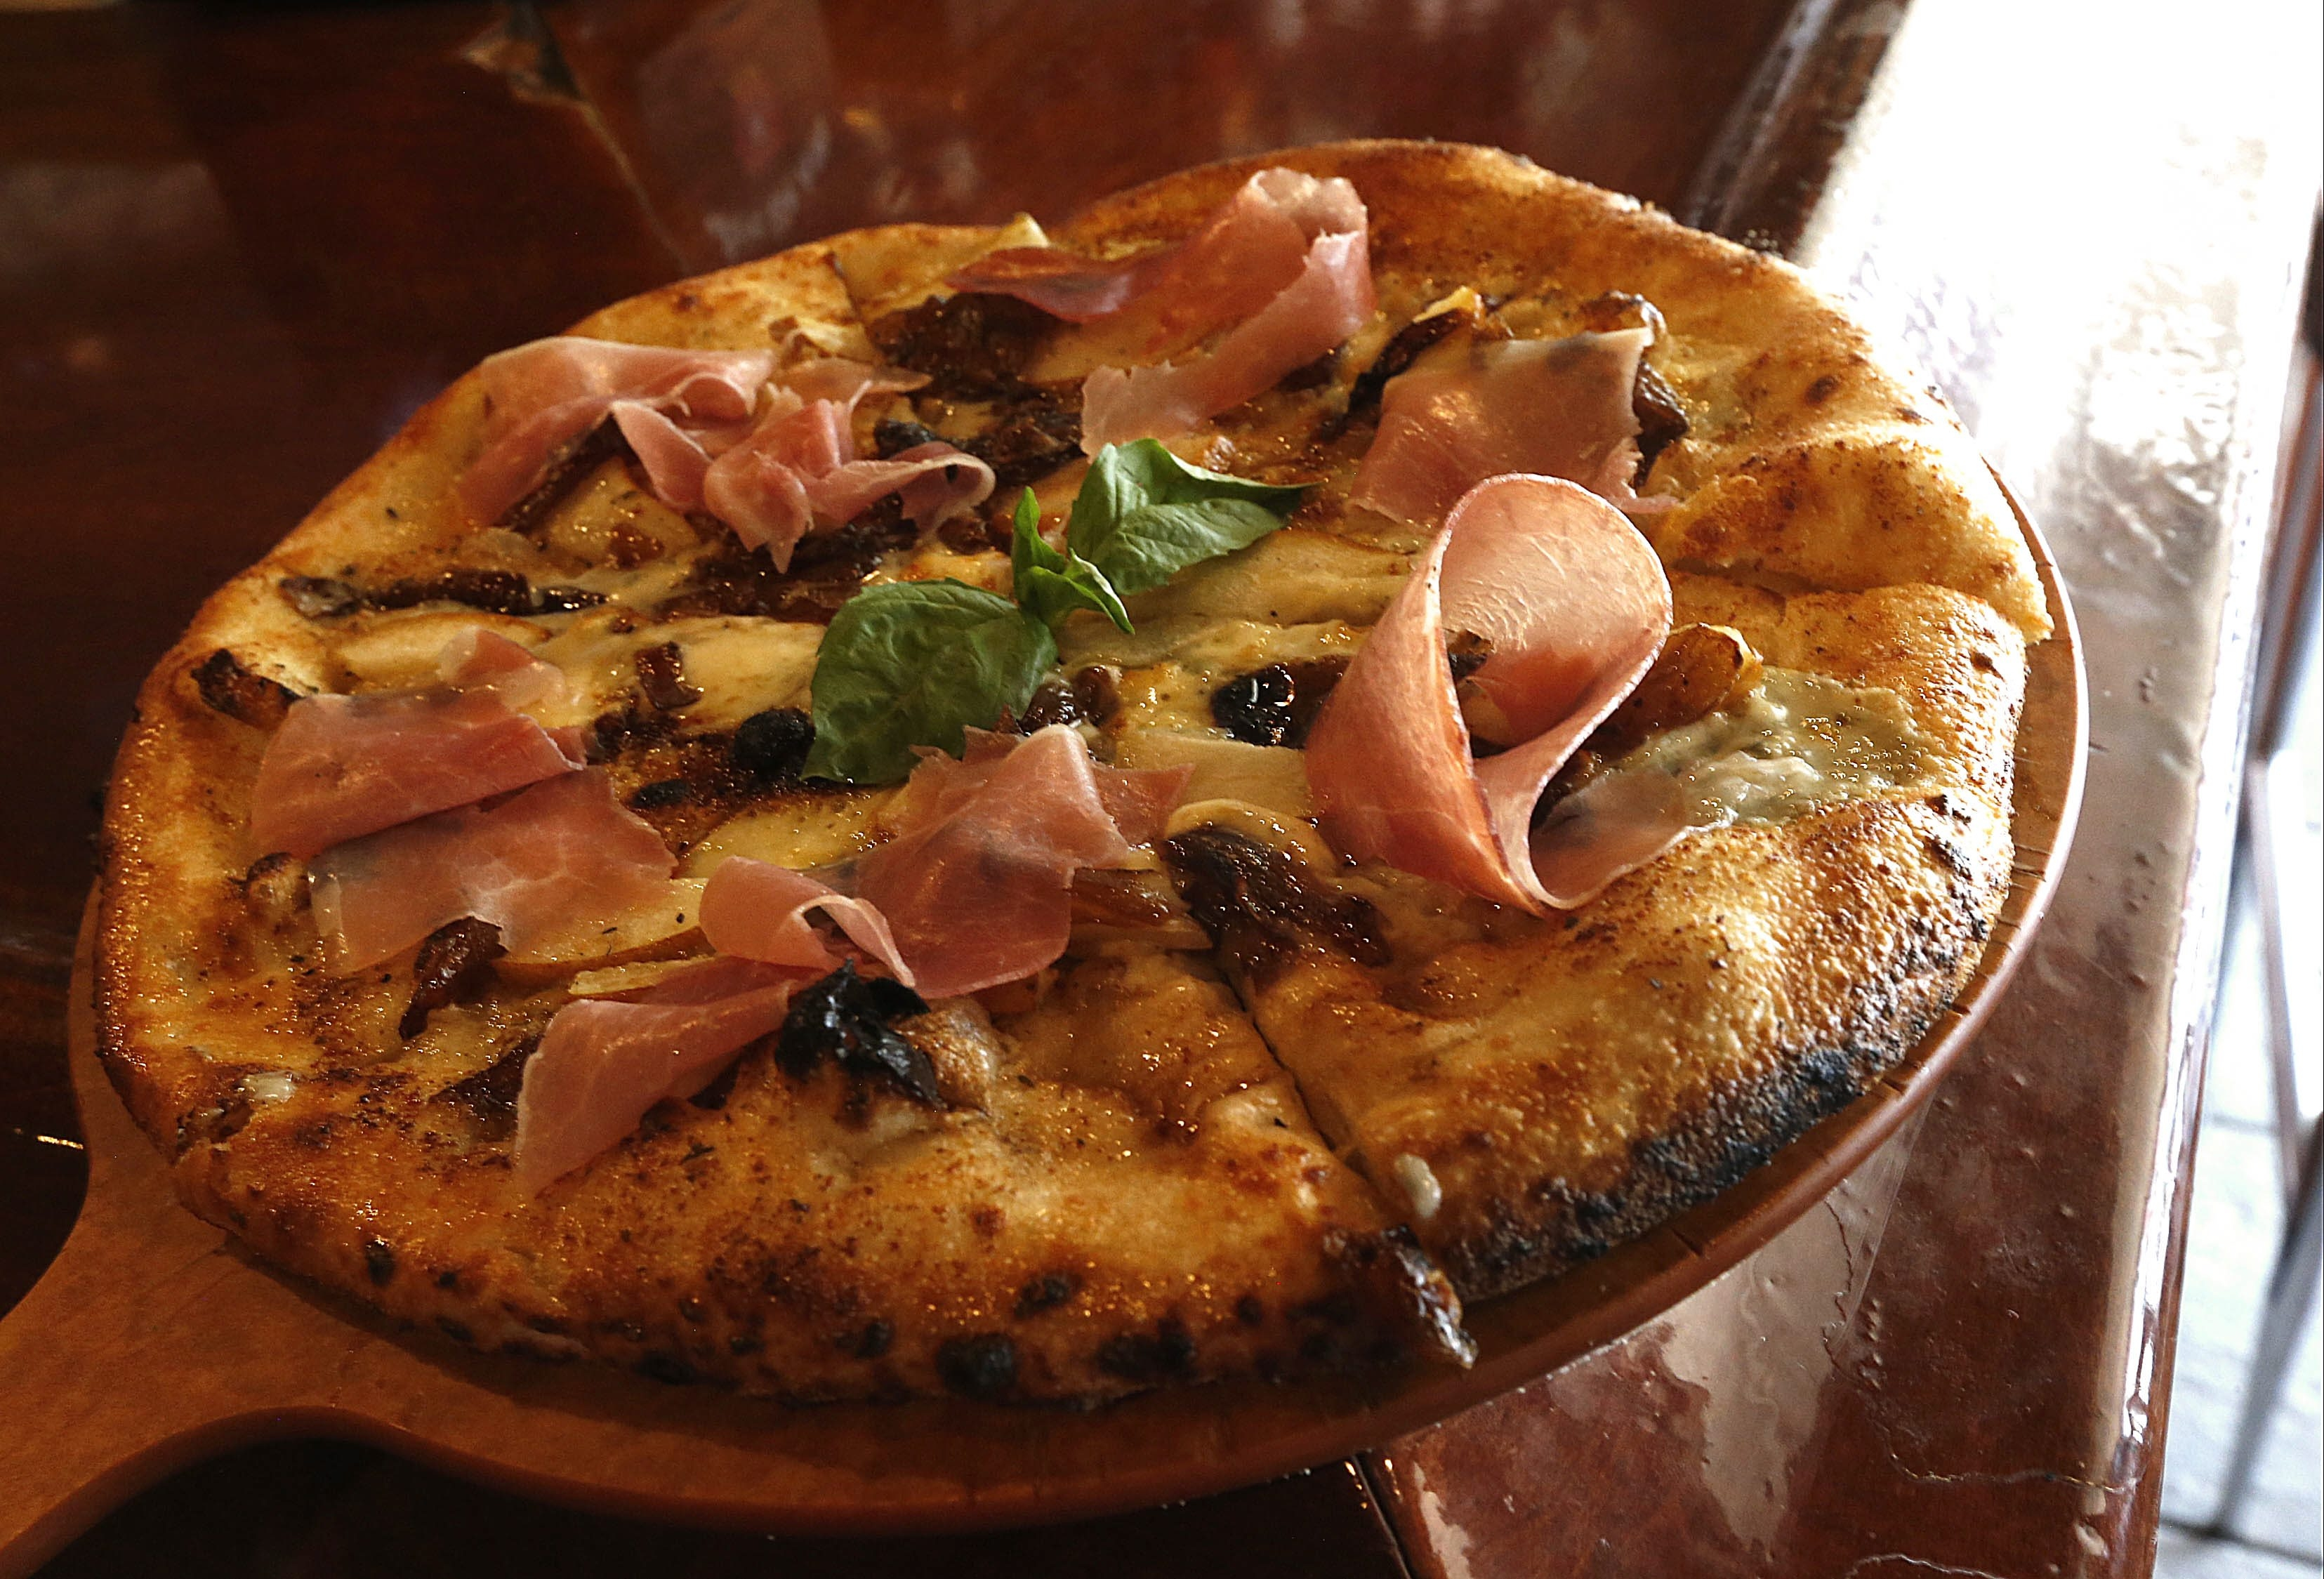 The wood fired brick oven Pear and Gorgonzola cheese pizza with light dijon butter sauce at La Tavola Trattoria on Hertel Ave. in Buffalo on  Wednesday, May 14, 2014.  (Robert Kirkham/Buffalo News)